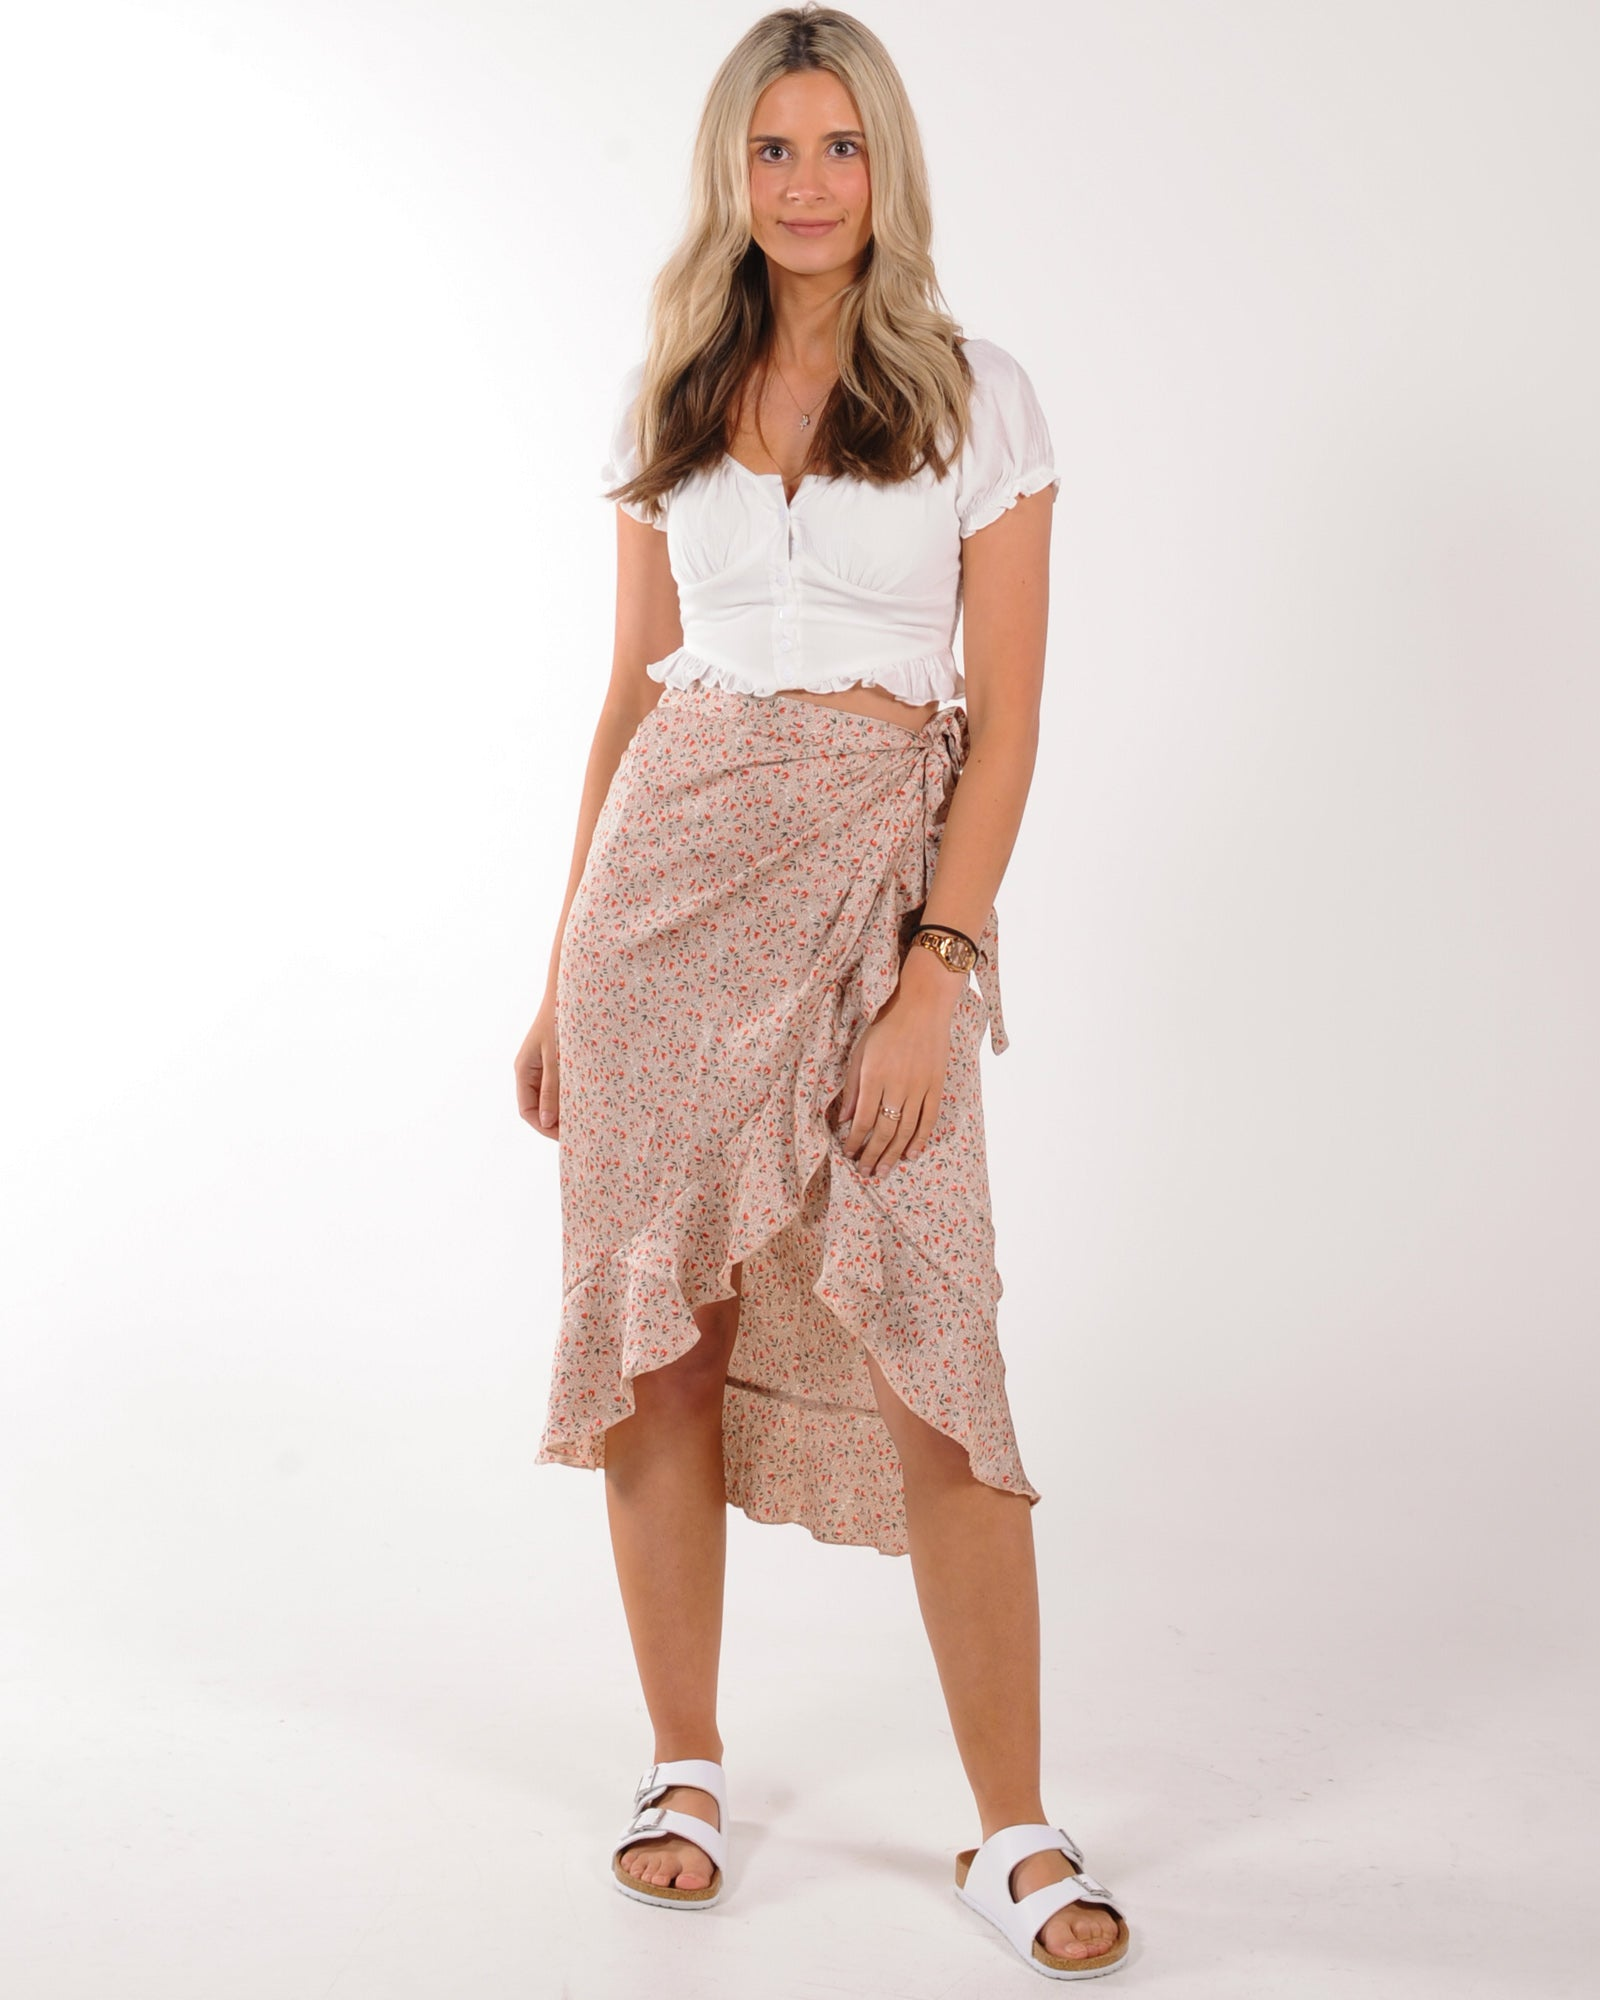 In Your Dreams Midi Skirt - Beige